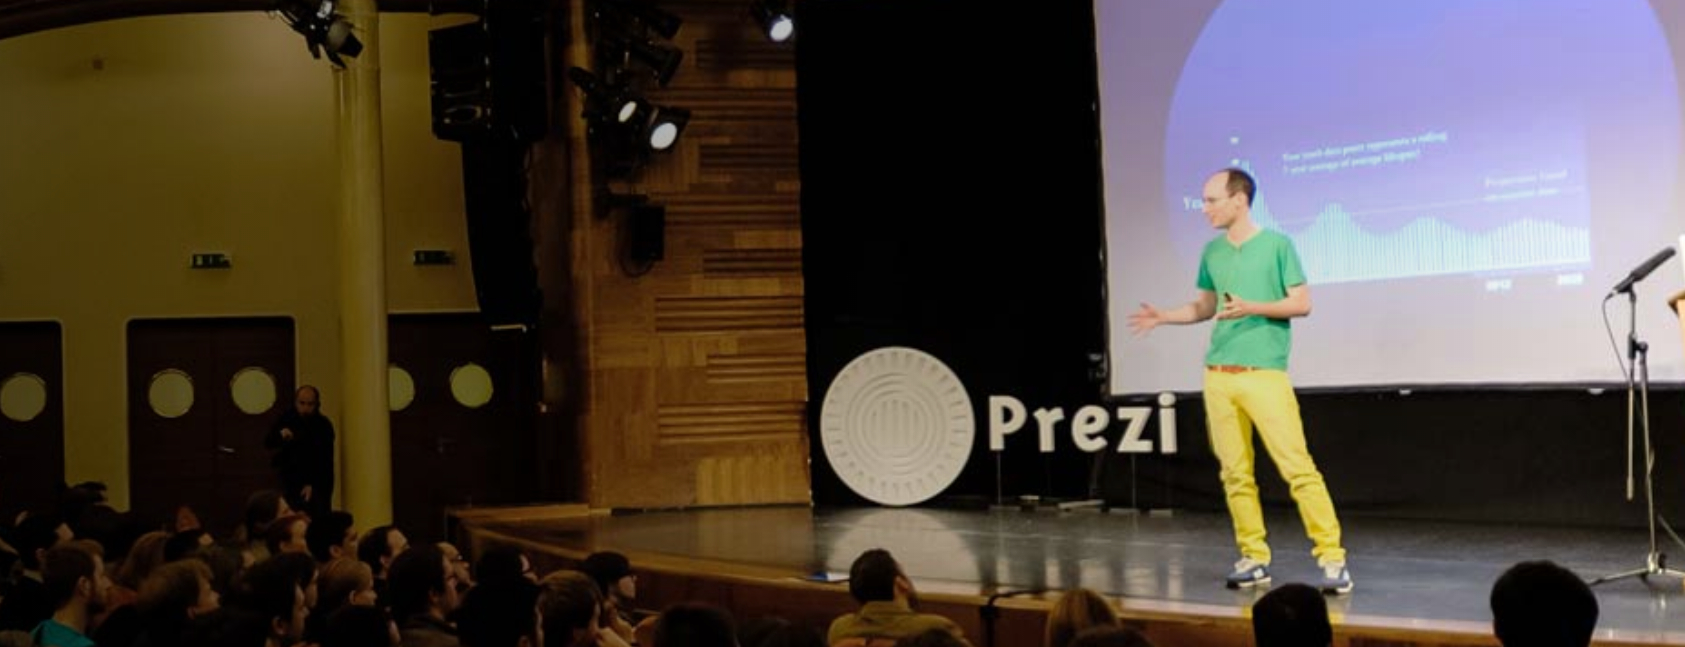 Prezi: Building a Successful Startup From a Small Country